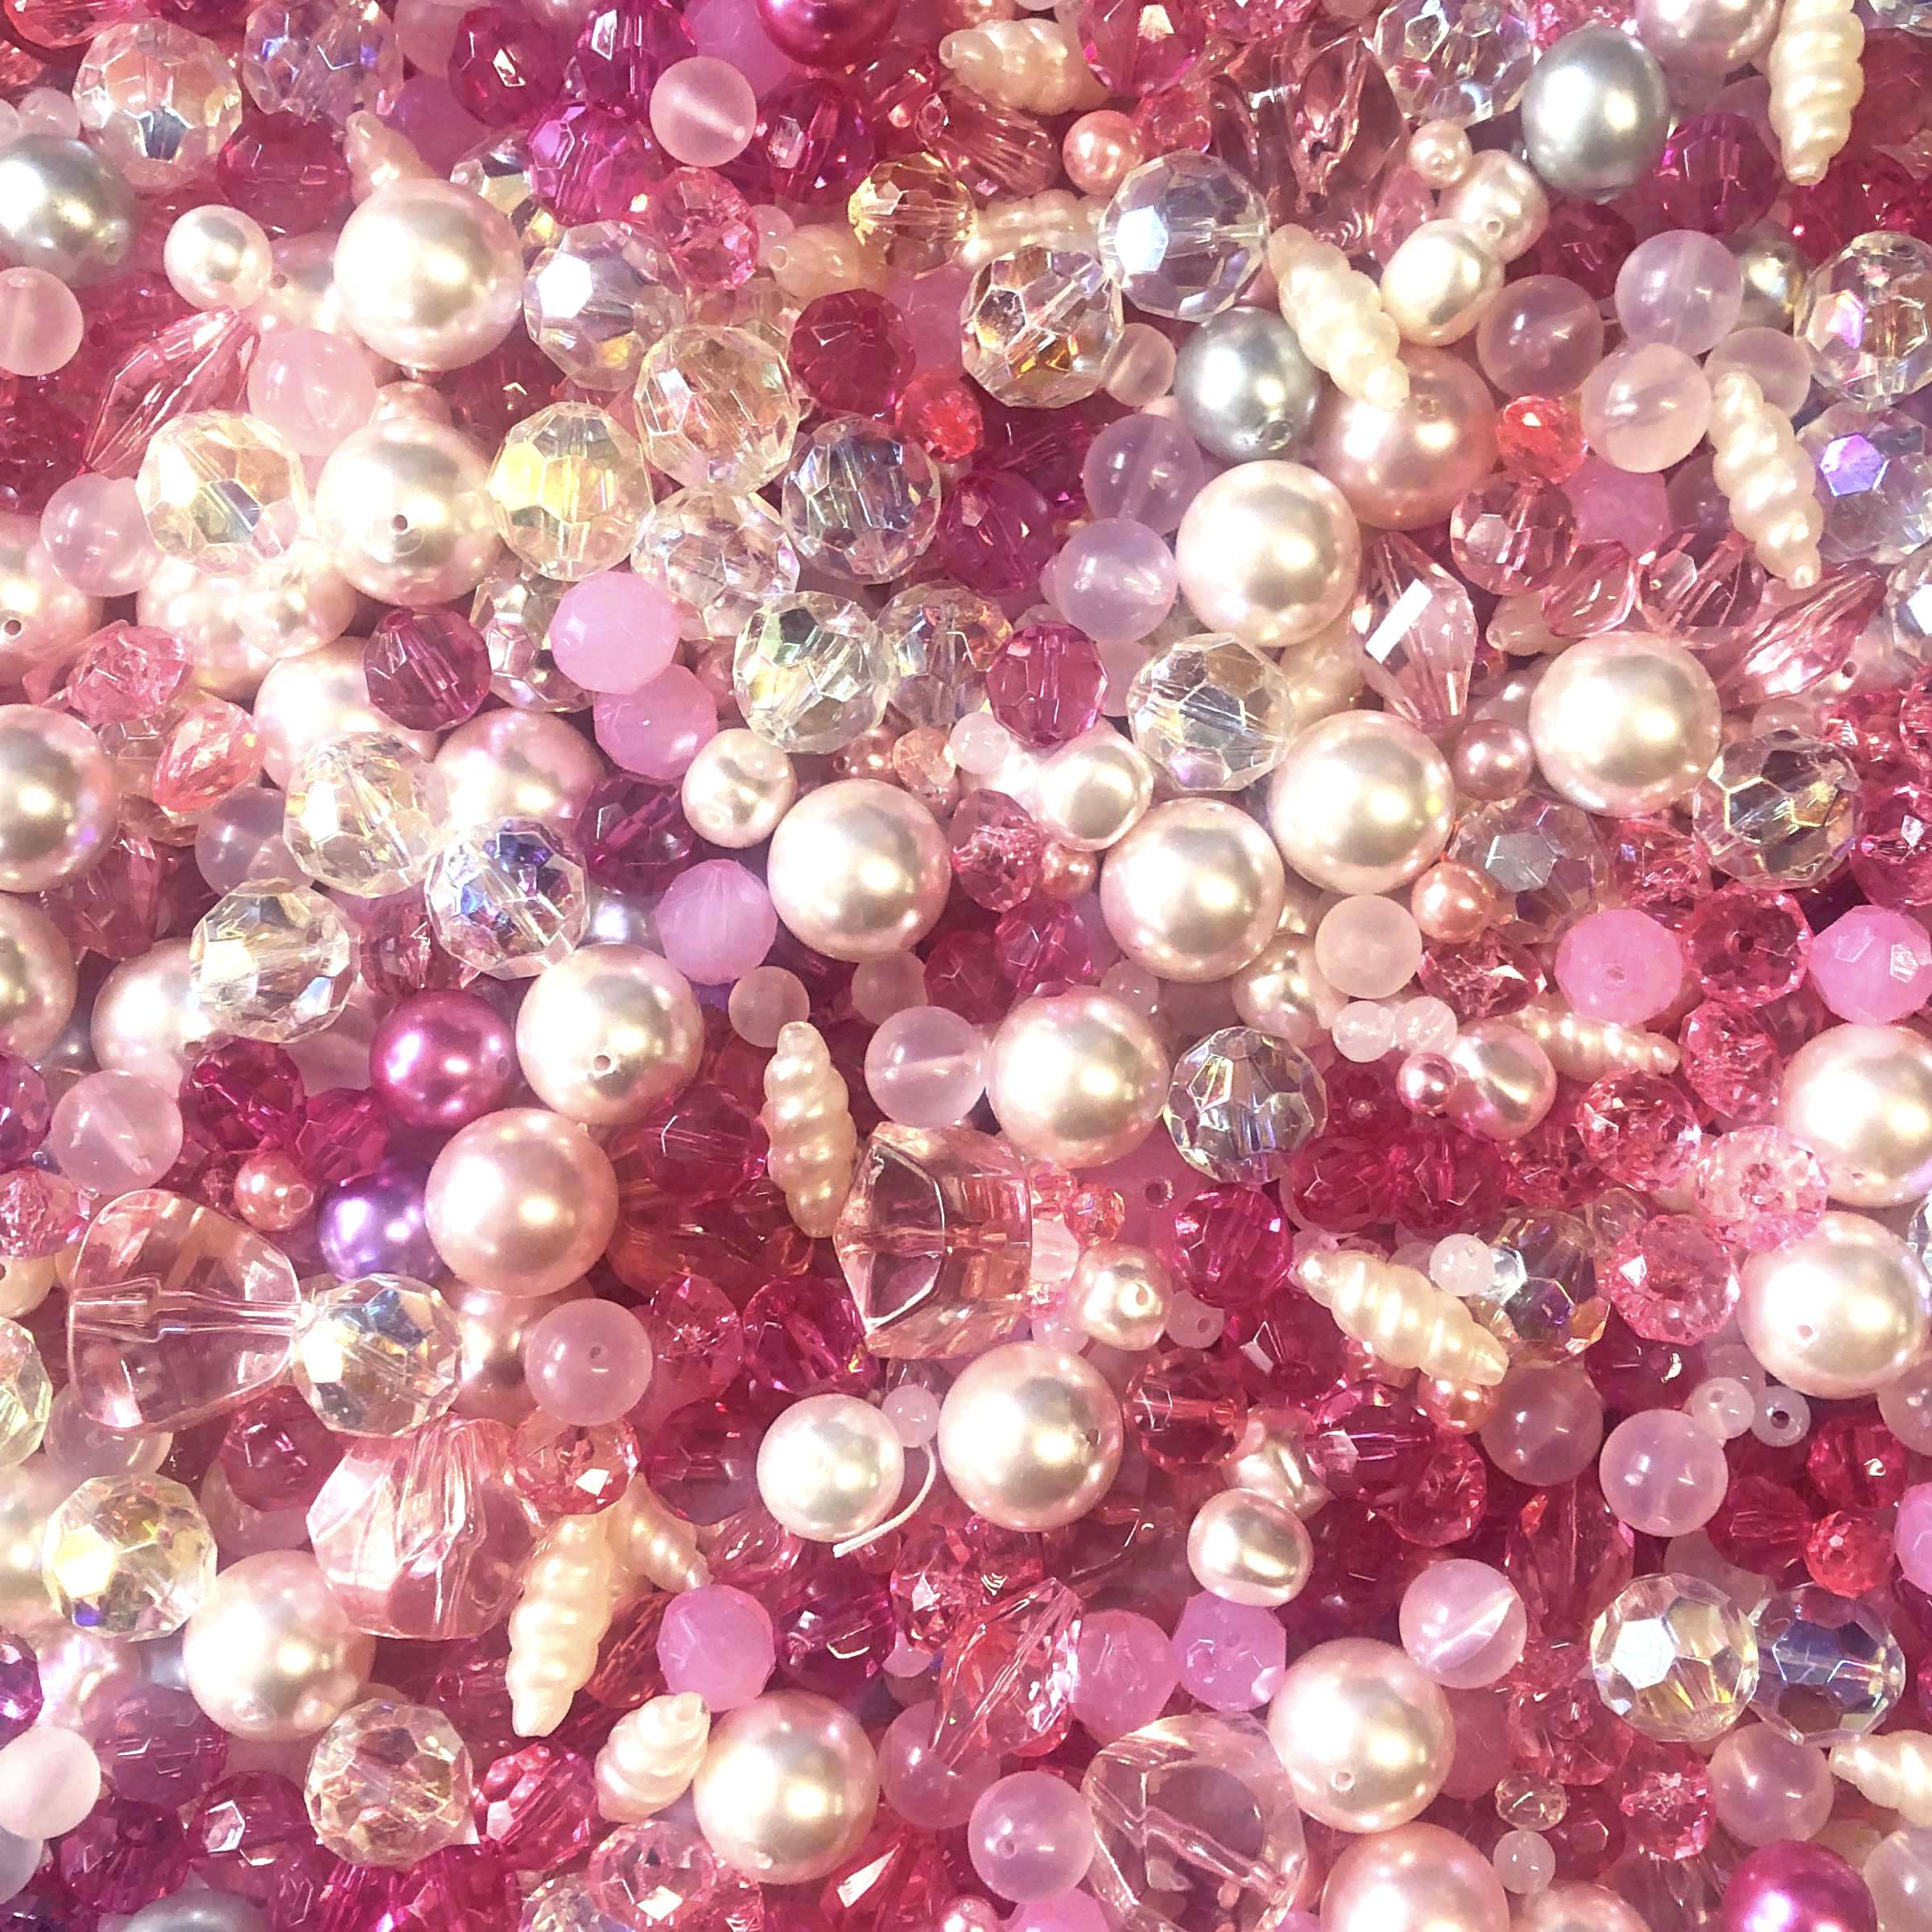 designer beads, acrylic beads, vintage designer beads, tickled pink, plastic beads, vintage pearls, beading supplies, making beaded jewelry, lucite beads, luster beads,  B'sue, pearls, bead mix, pink beads, jewelry beads, beads, jewelry making, 01065